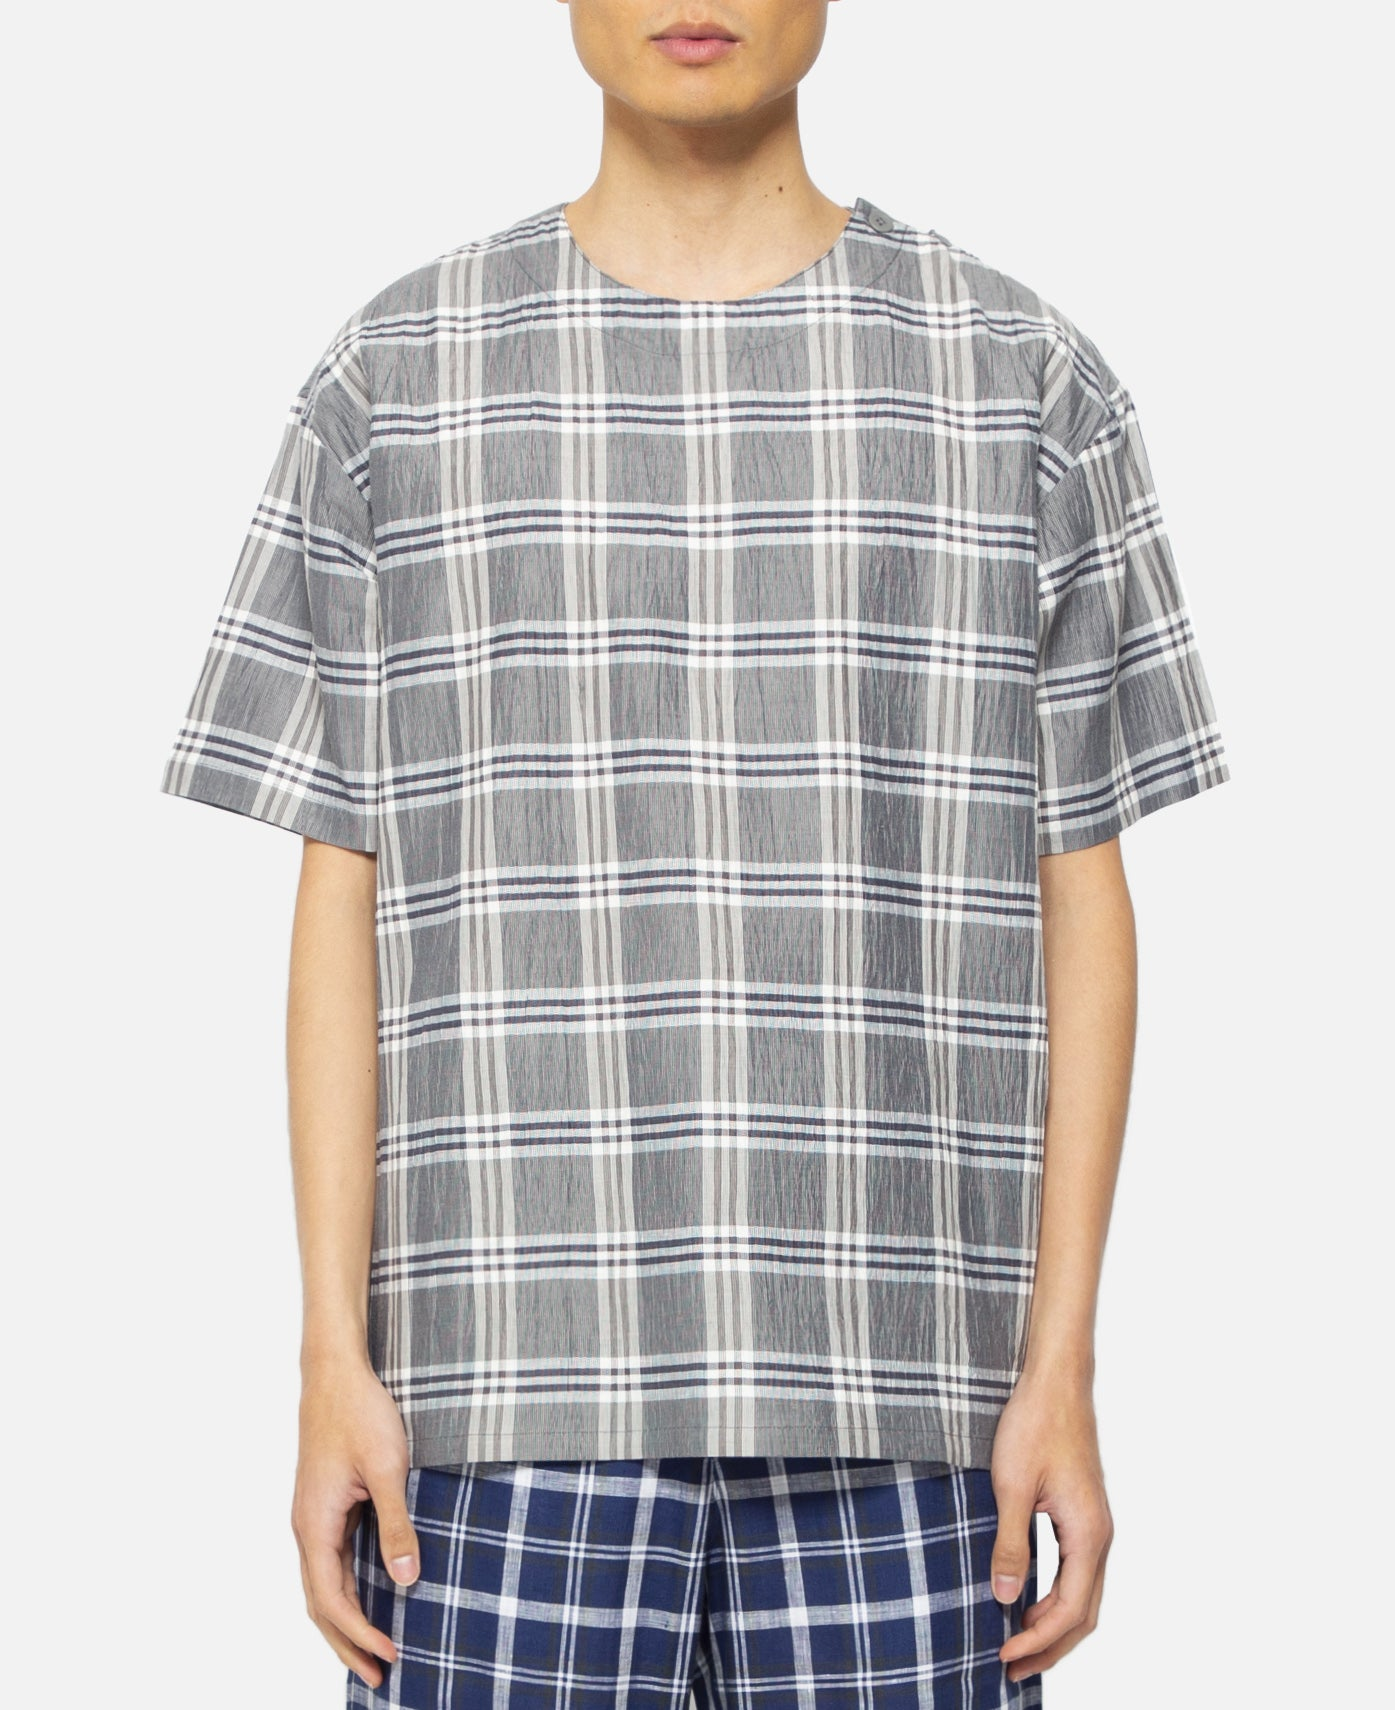 Oversized Dress Up T-Shirt (Checkerboard)